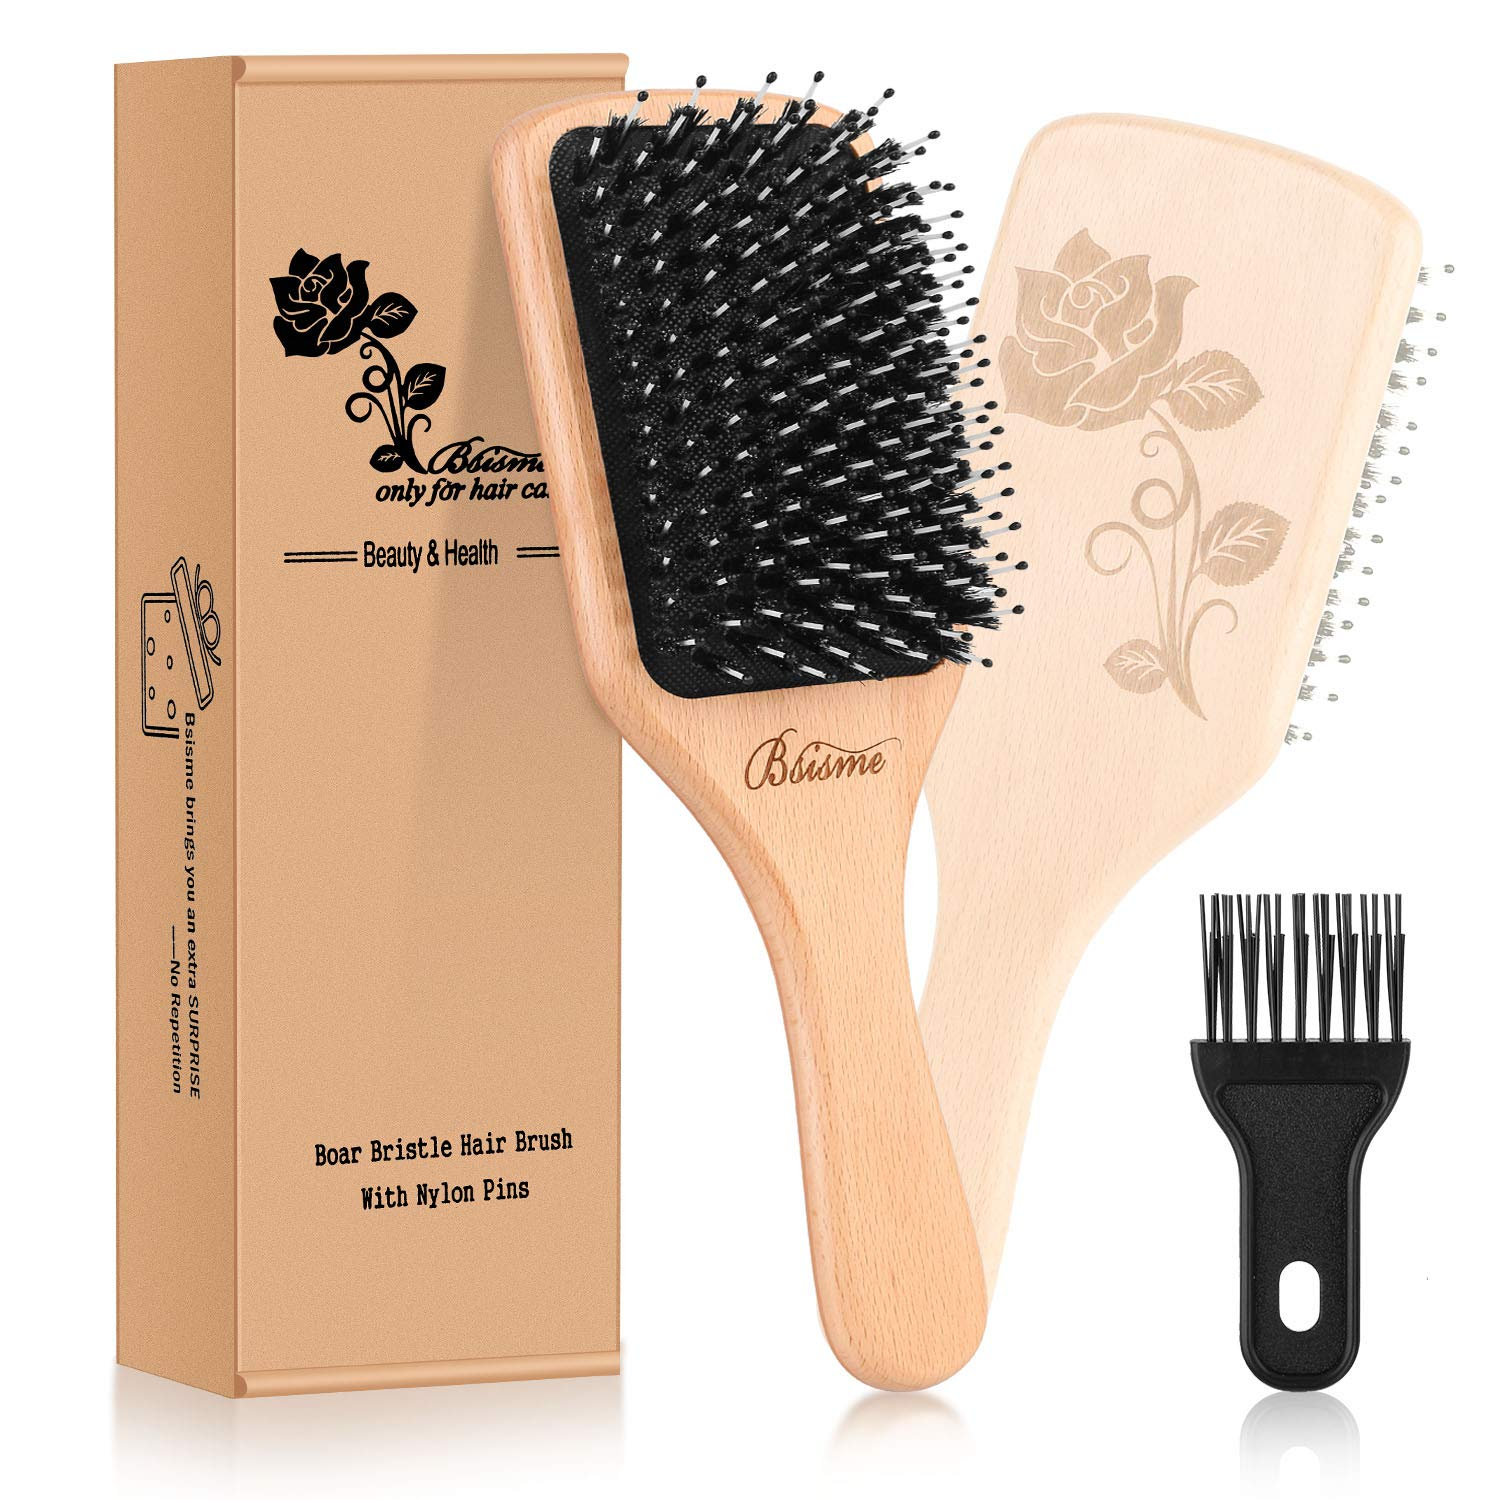 Bsisme Boar Bristle Detangling Paddle Brush